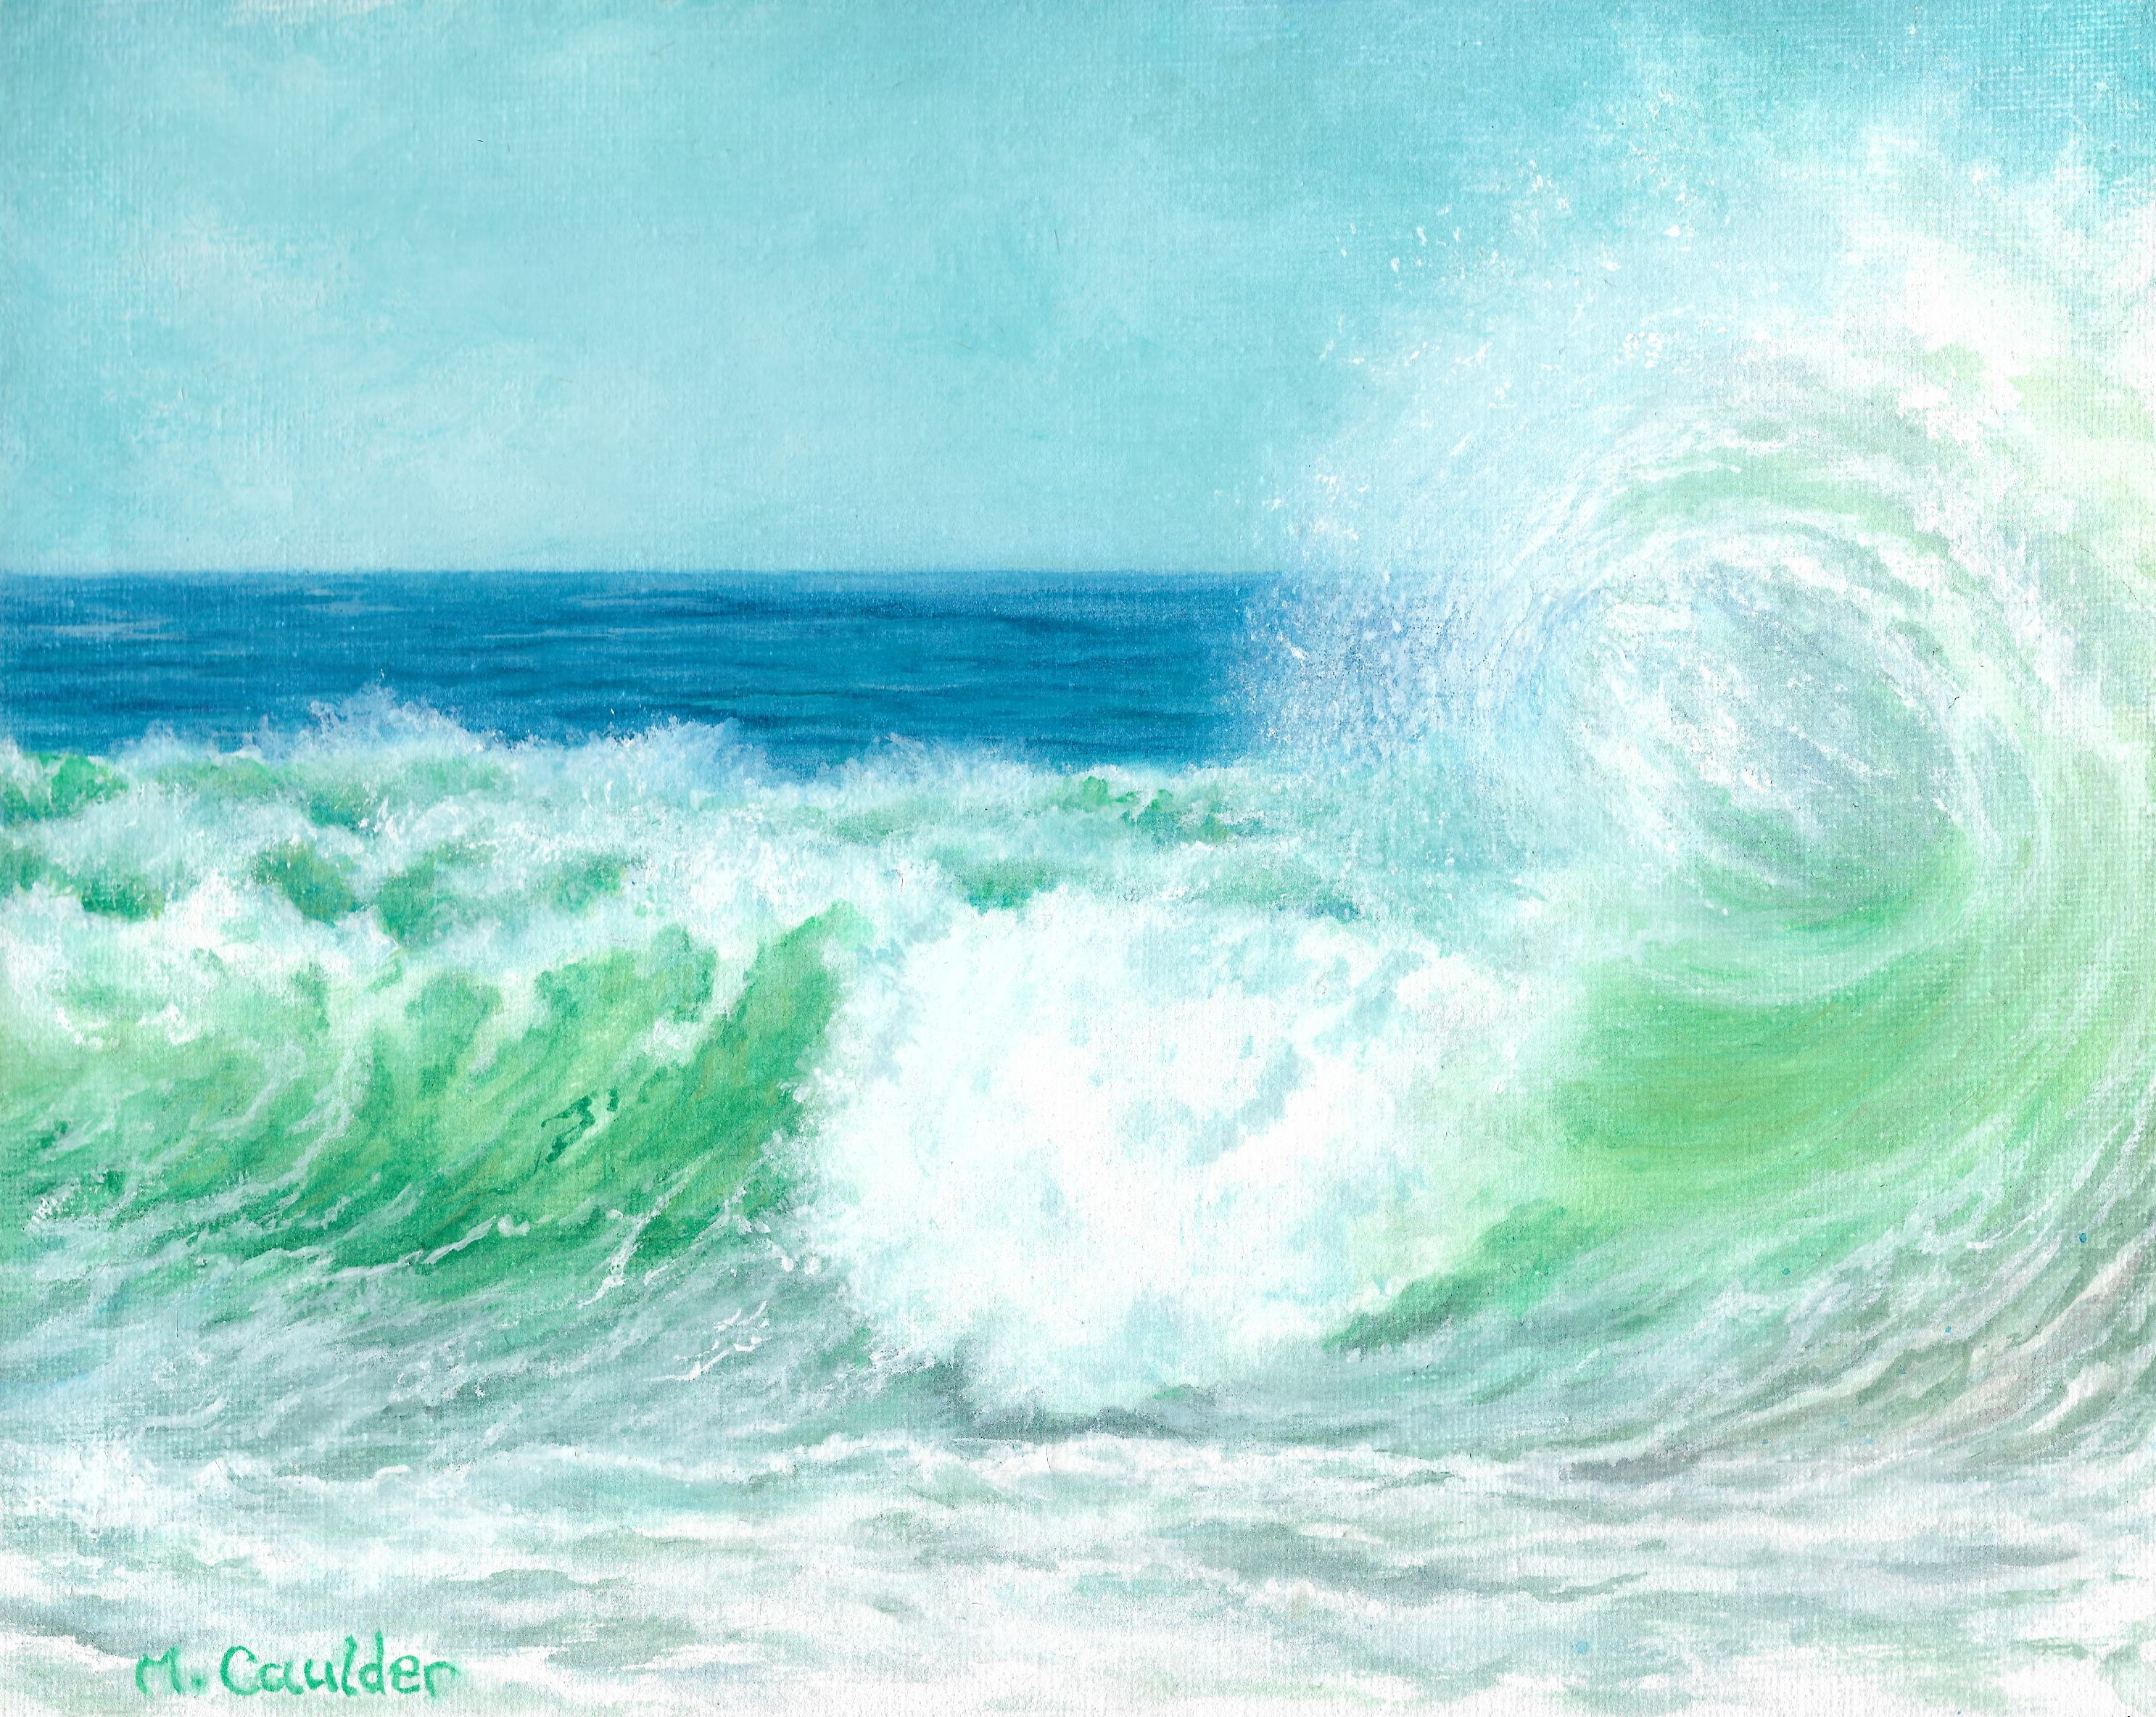 watercolor on canvas painting green ocean waves surf